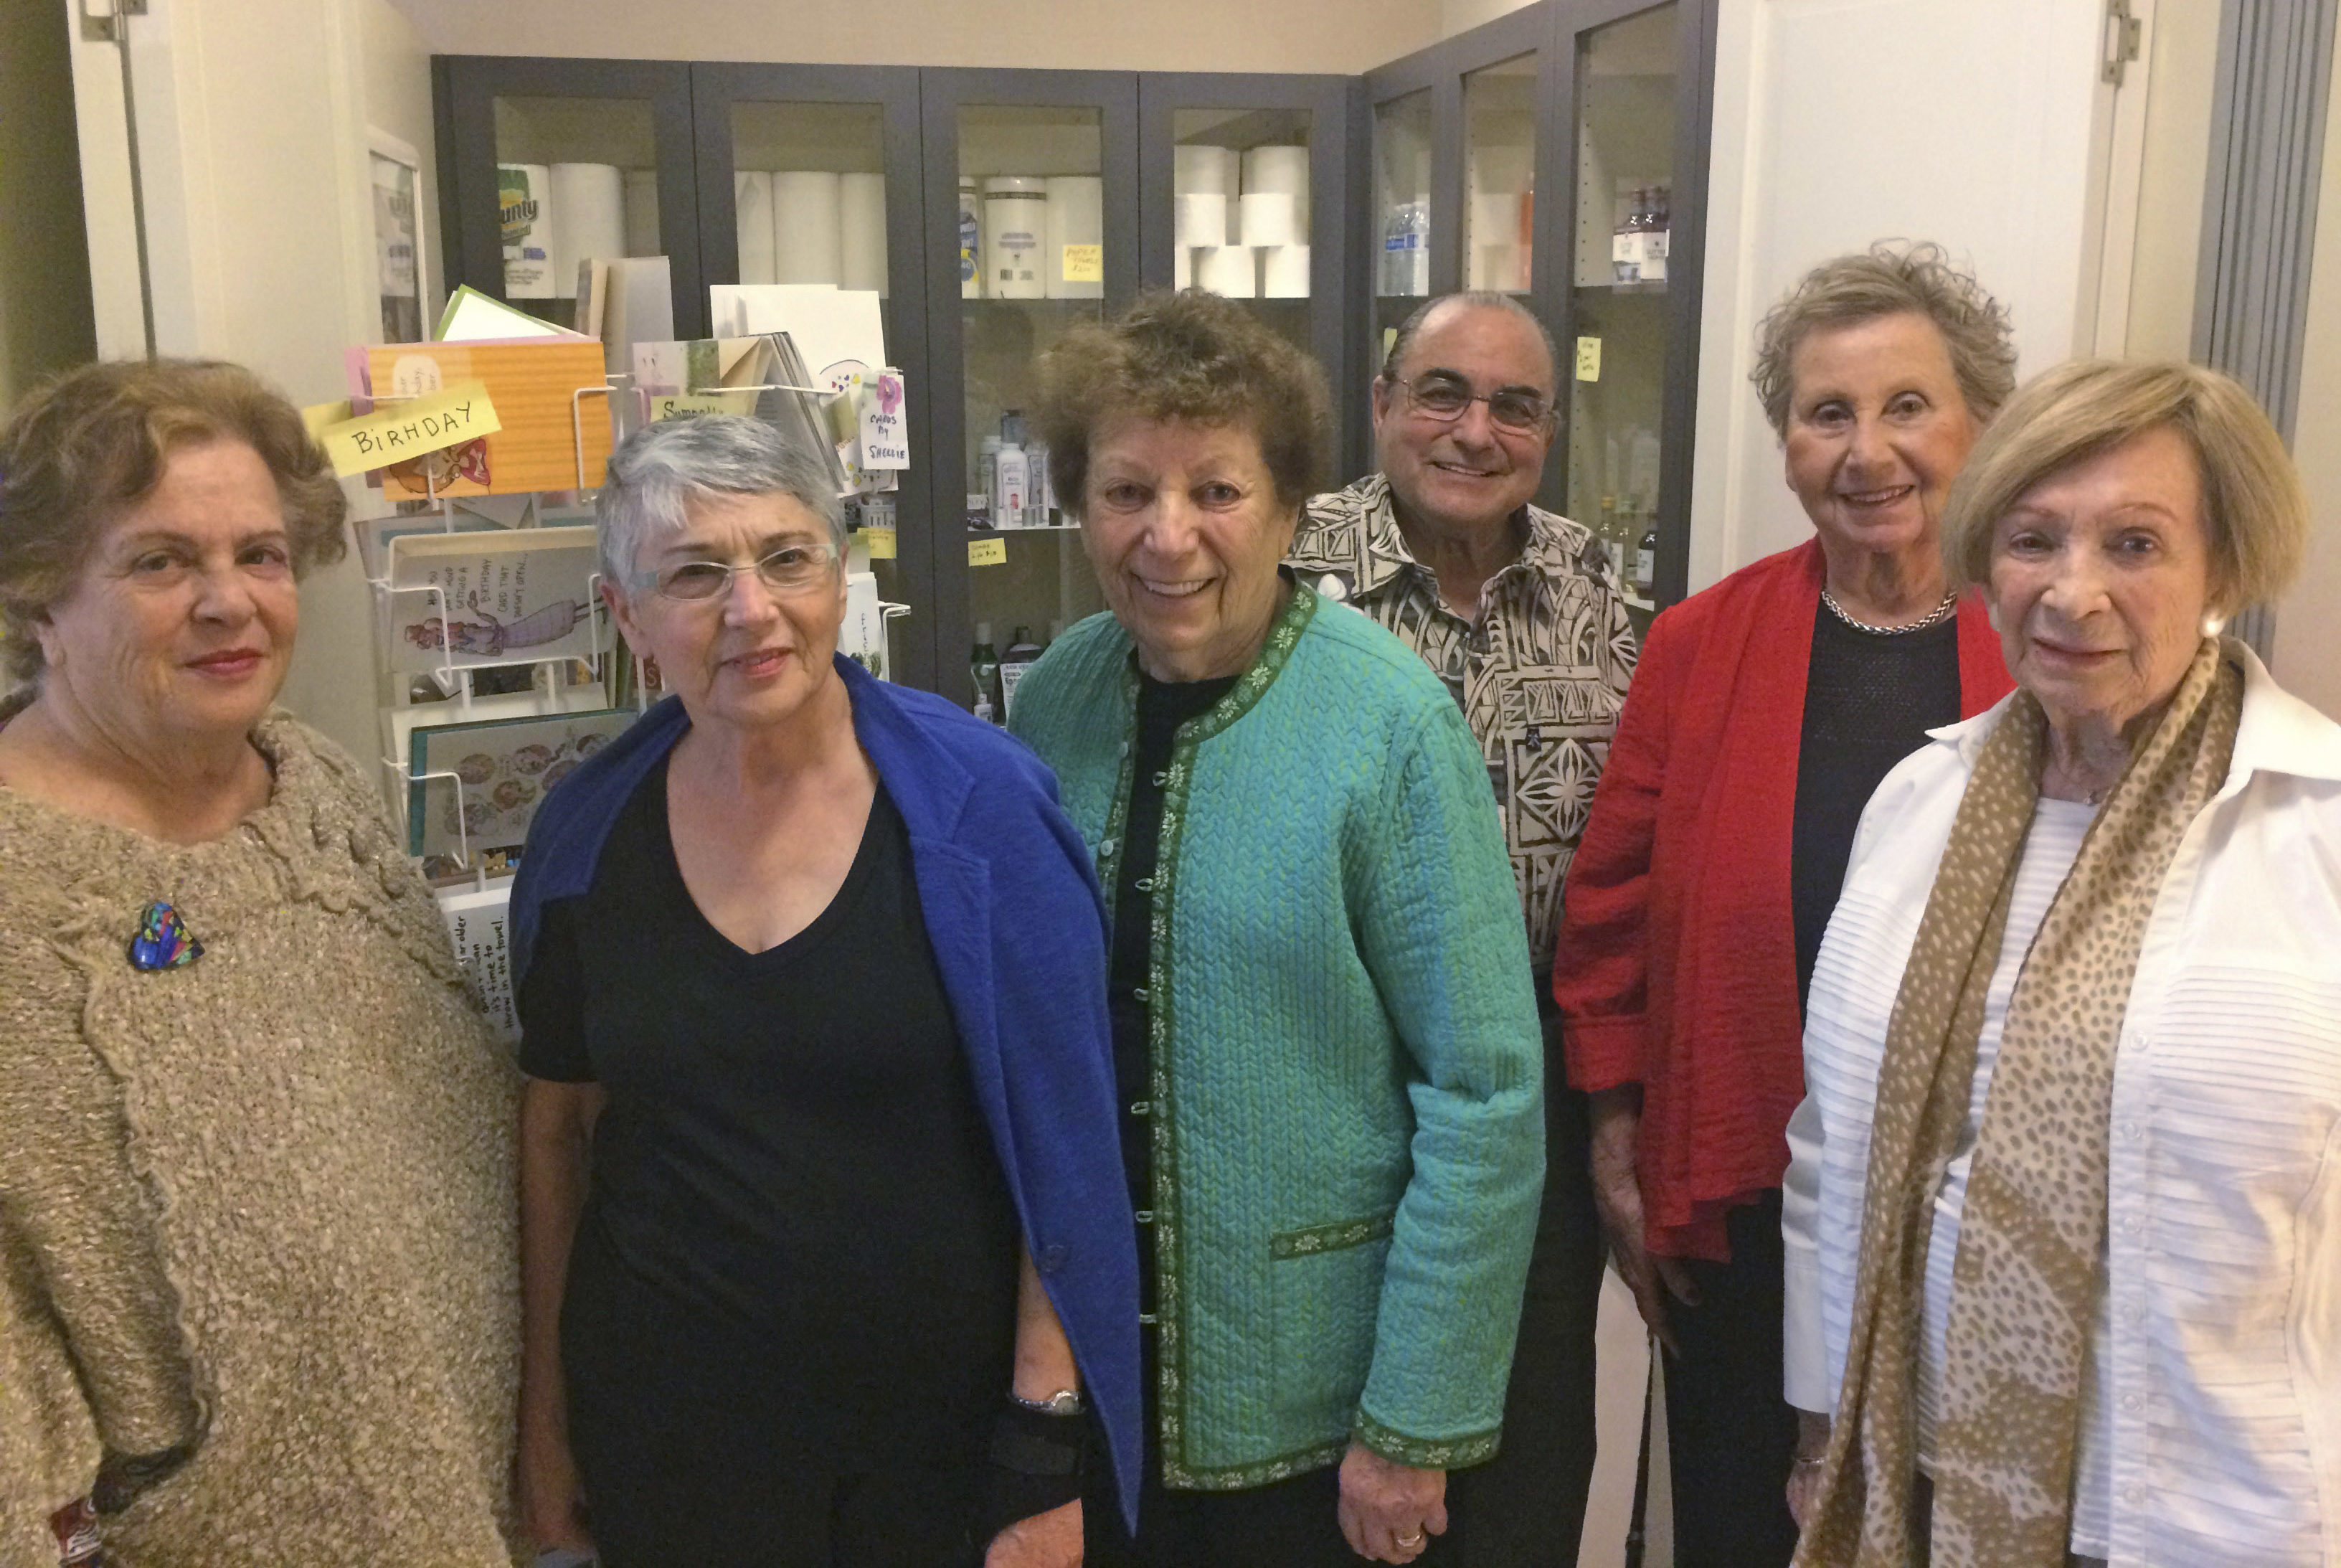 (From left) Ellen Rubinchik, Jean Myers, Shirley Milenko, Harry Rubinchik, Carole Stein and Zdenka Levy in front of This and That (Photo/Rob Gloster)